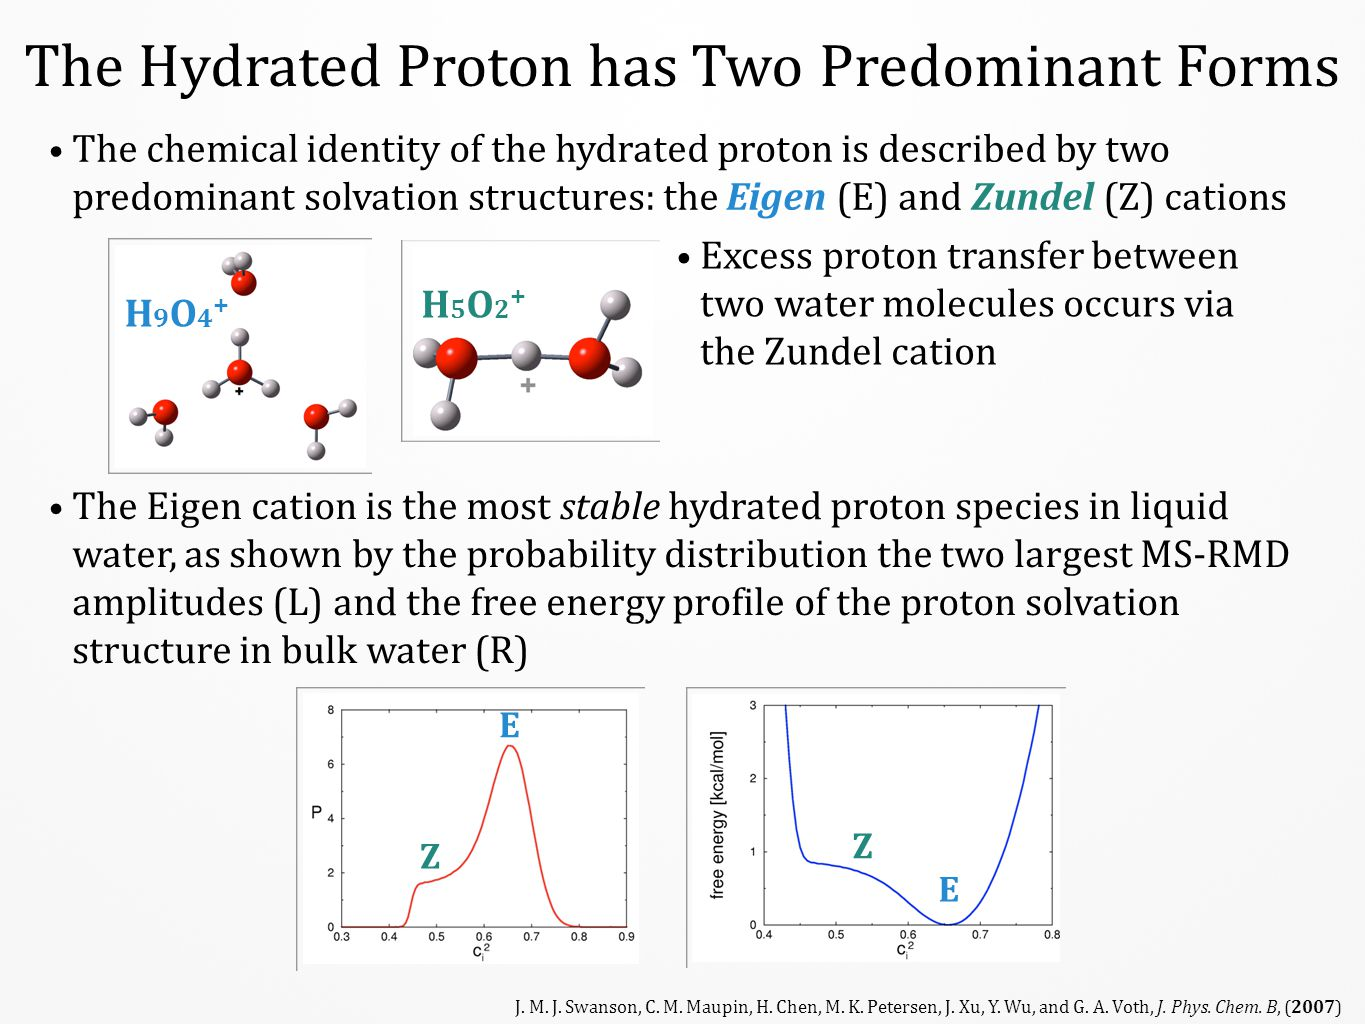 The Hydrated Proton has Two Predominant Forms